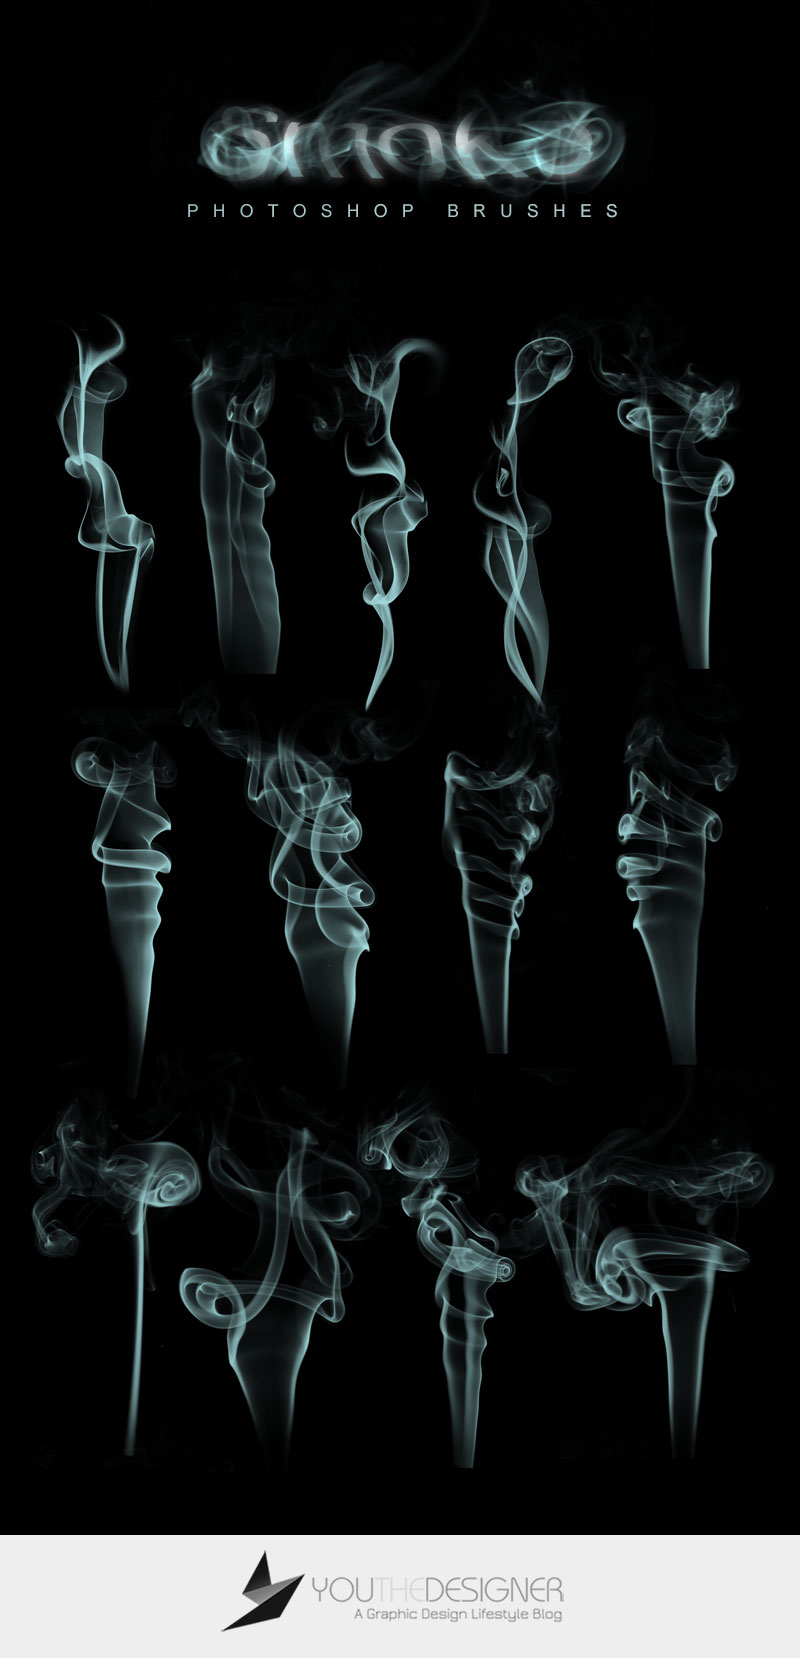 Smoke-Brushes-via-You-The-Designer